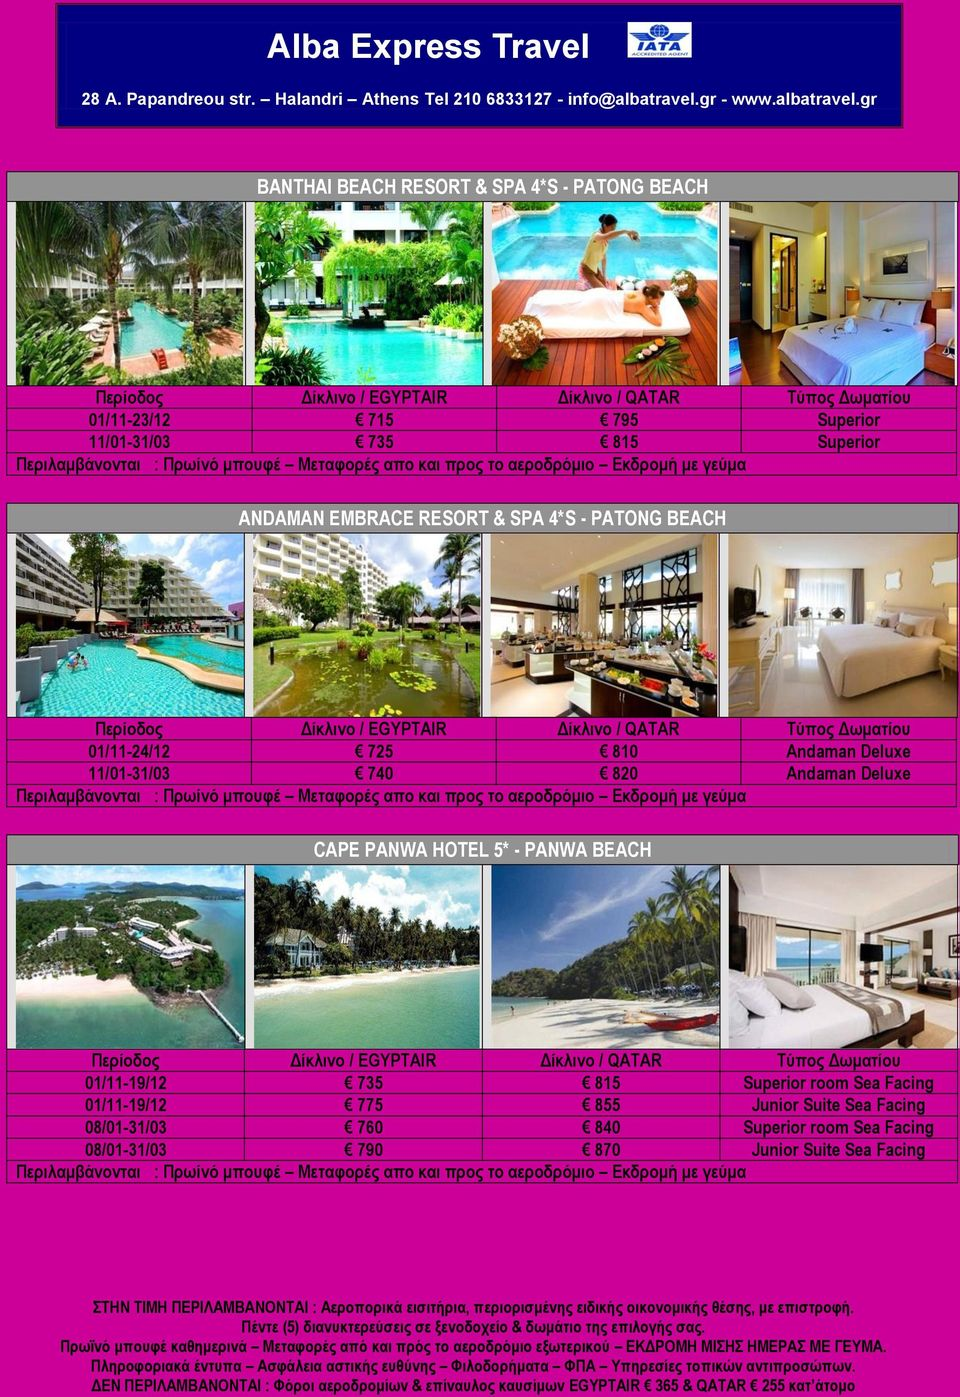 Andaman Deluxe CAPE PANWA HOTEL 5* - PANWA BEACH 01/11-19/12 735 815 Superior room Sea Facing 01/11-19/12